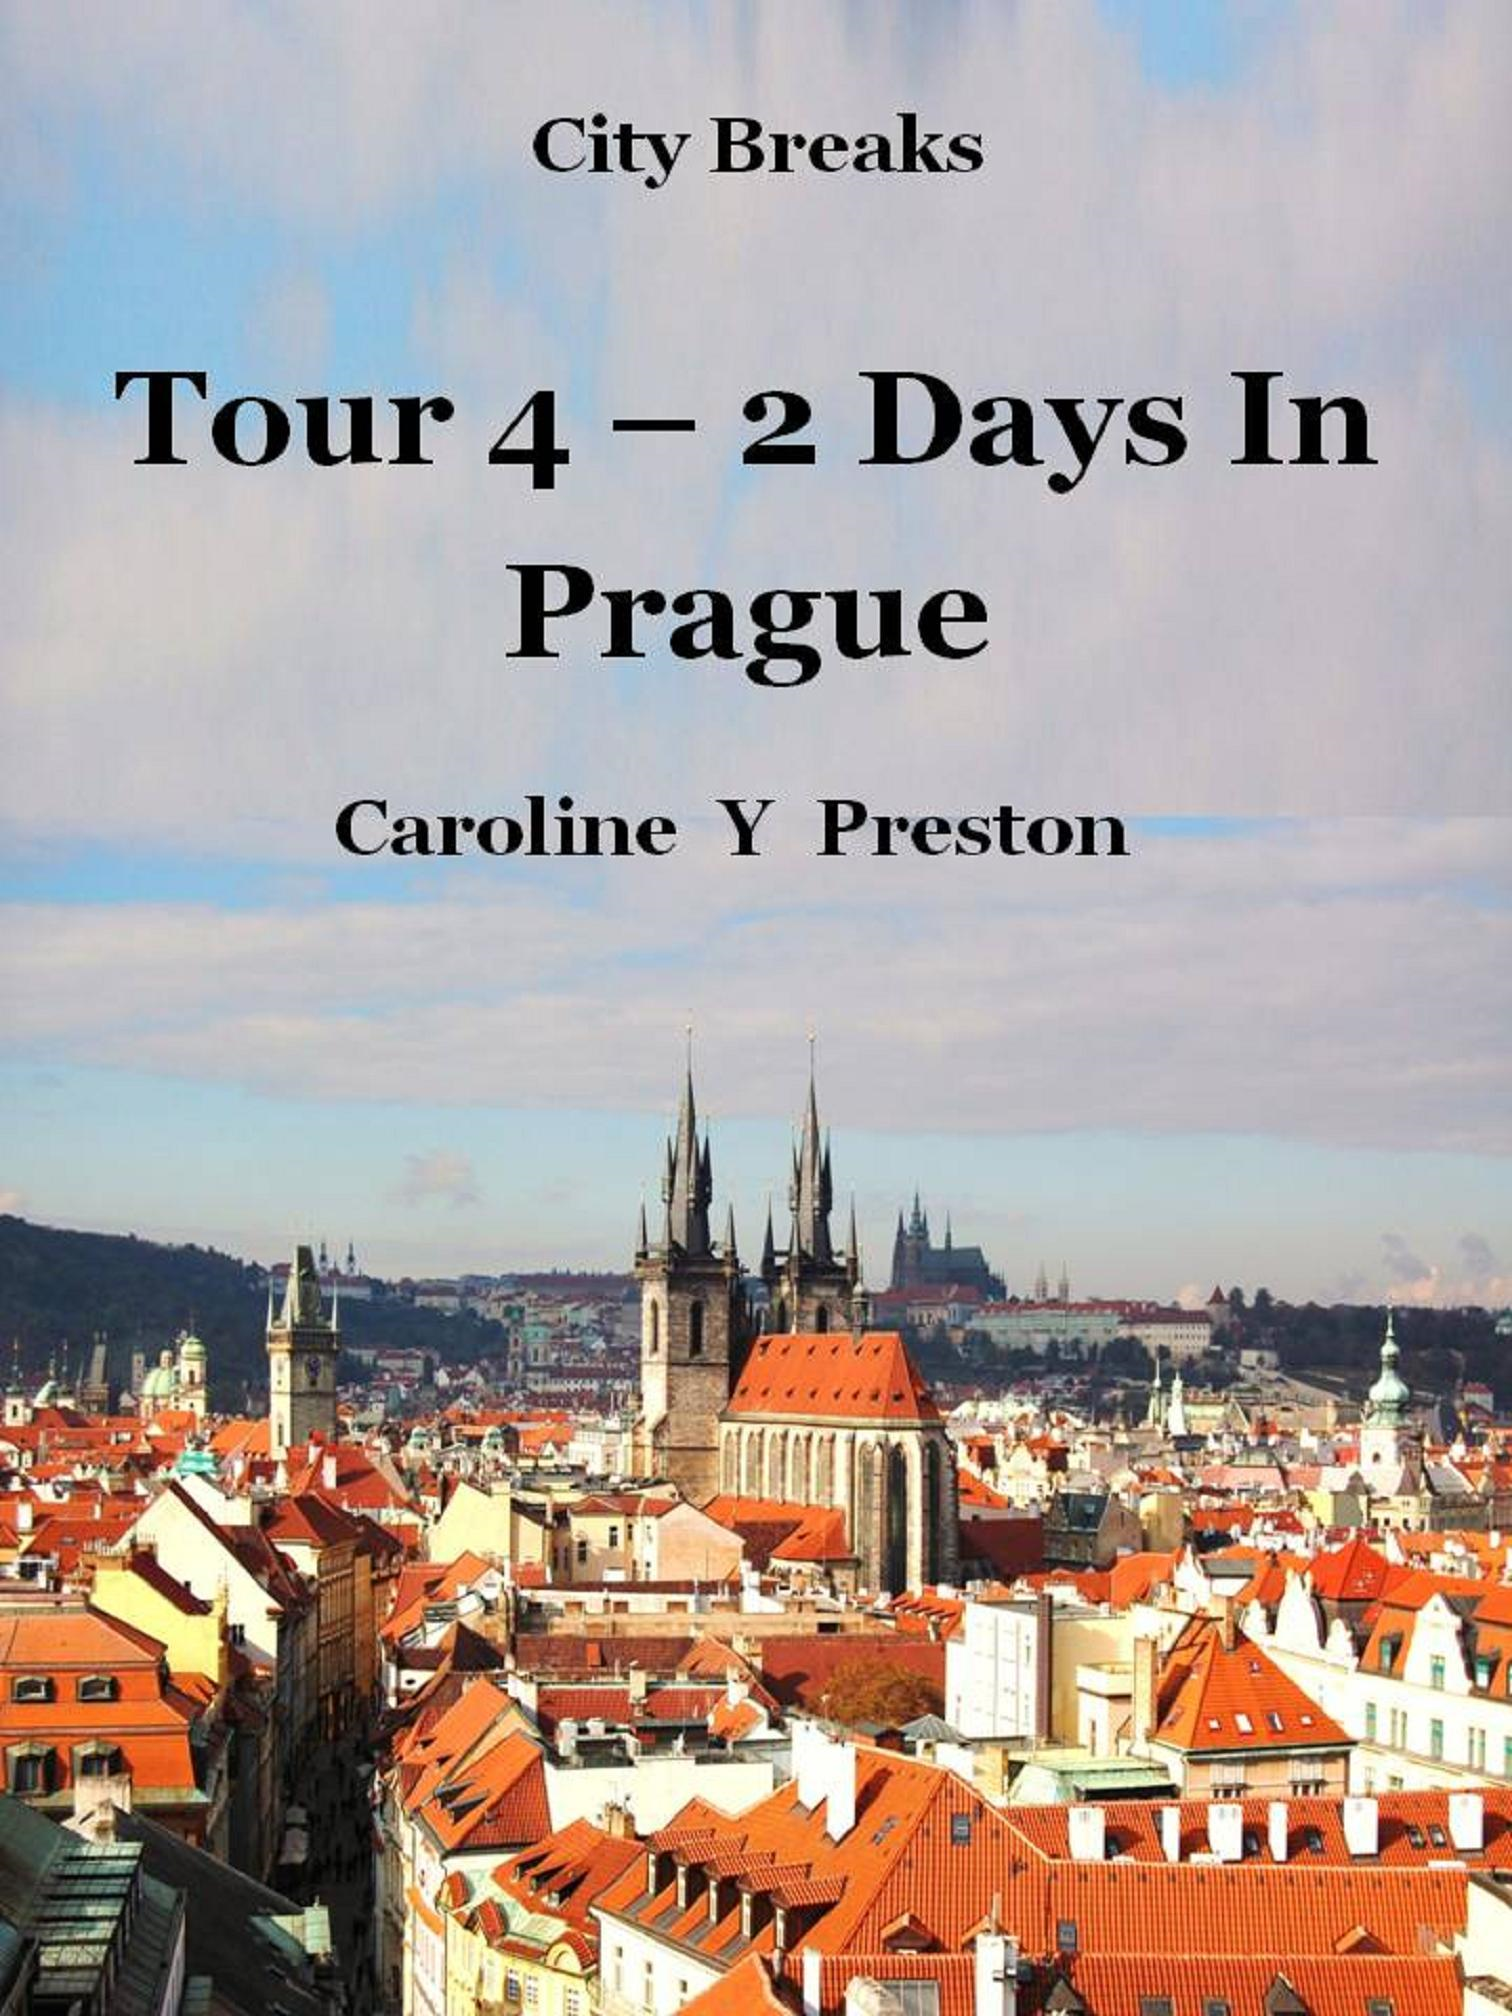 City Breaks: Tour 4 - 2 Days In Prague